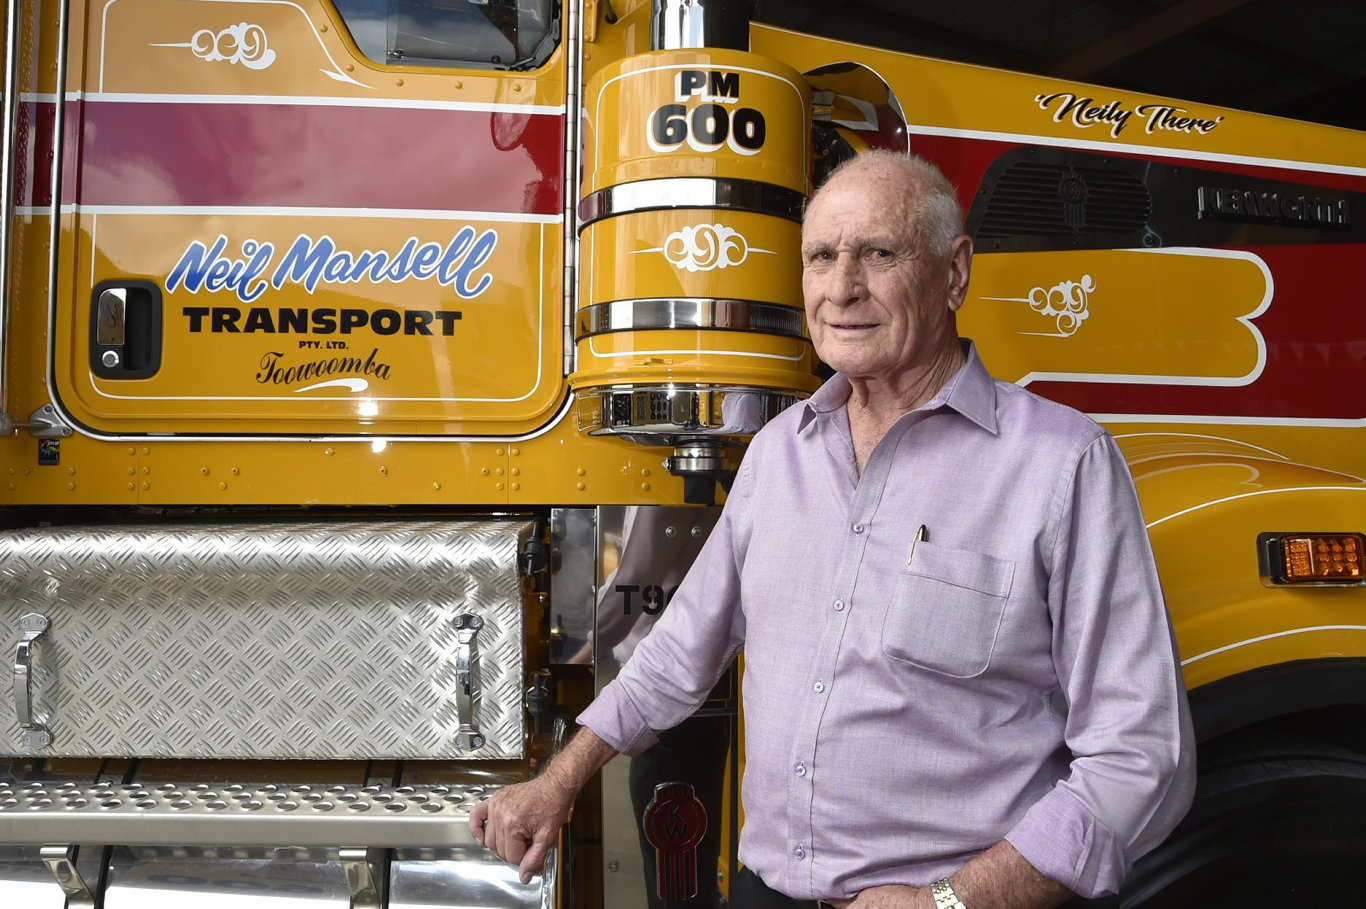 Australian Transport Industry Icon Neil Mansell